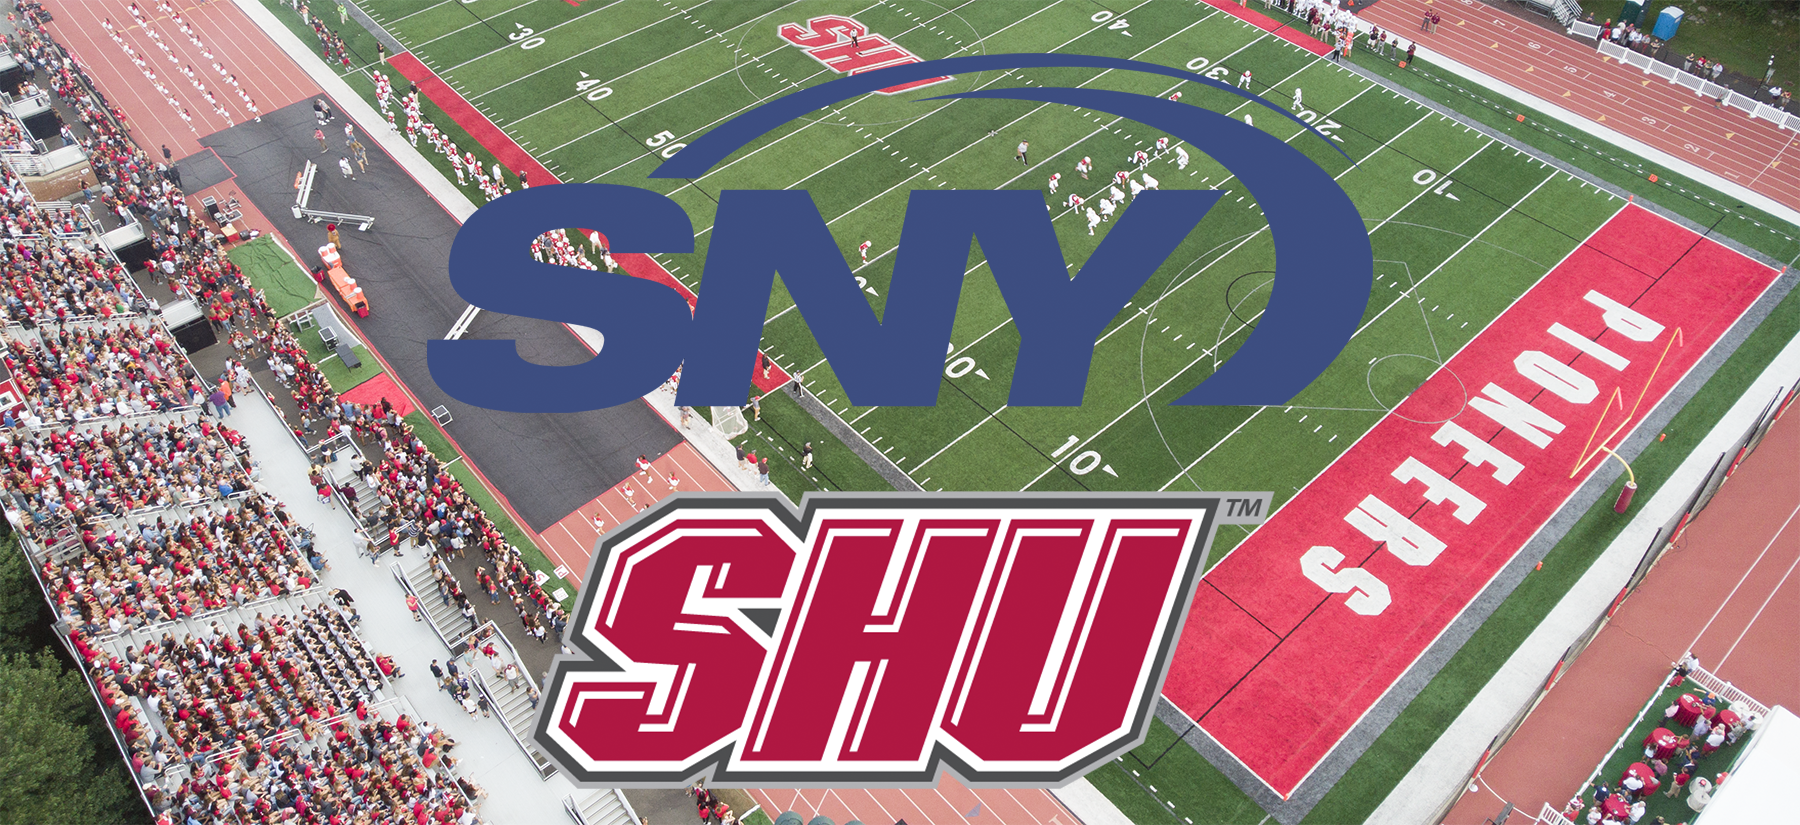 SHU will air at least six games live during the 2019-20 season on SNY.